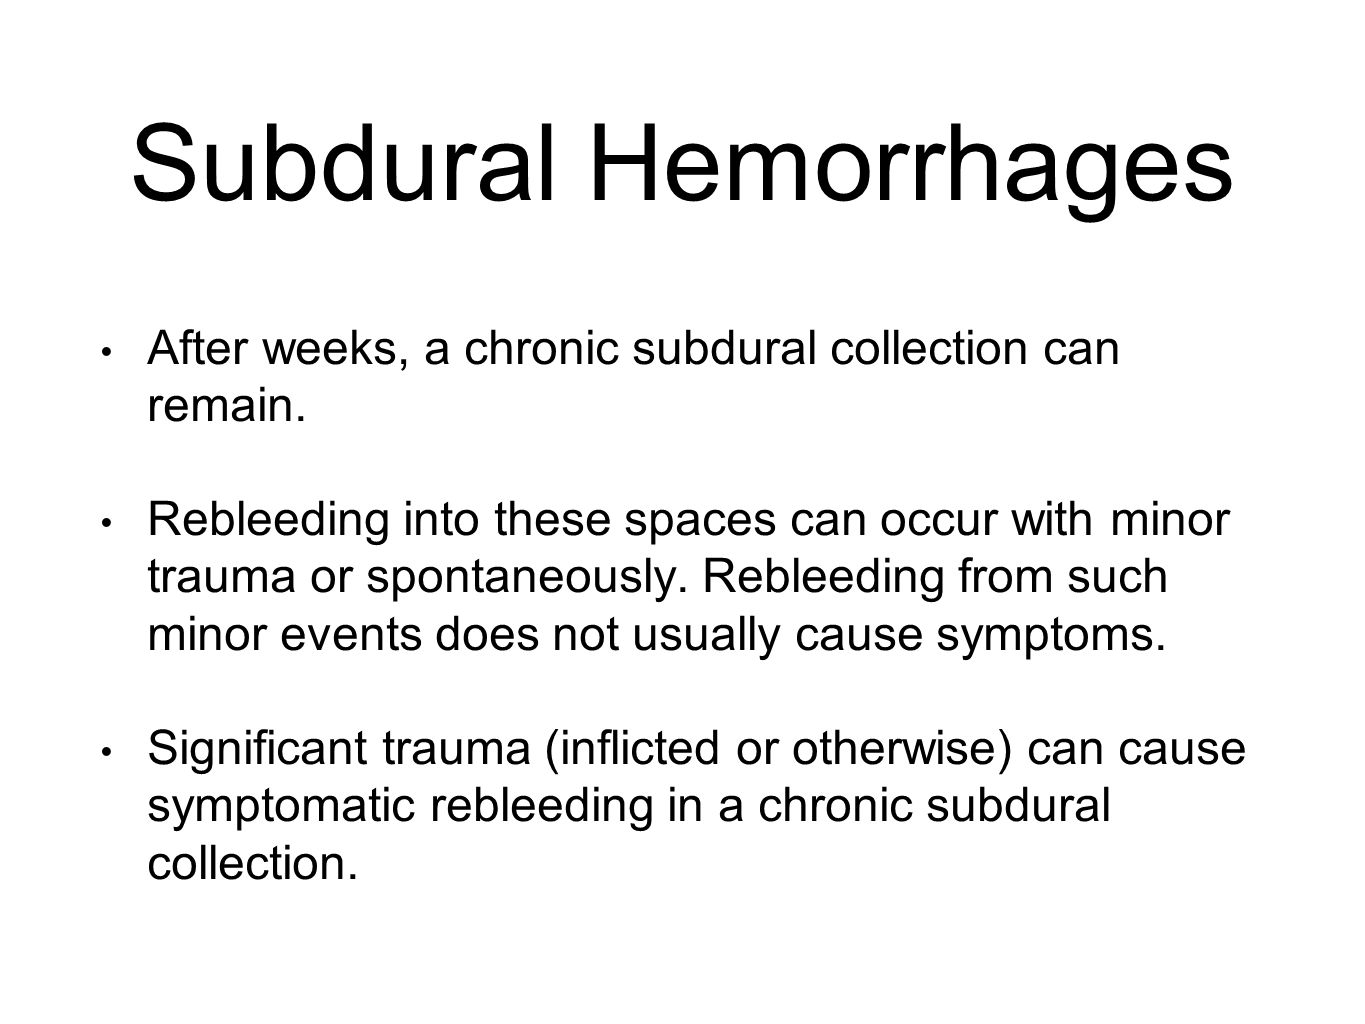 Subdural Hemorrhages After weeks, a chronic subdural collection can remain. Rebleeding into these spaces can occur with minor trauma or spontaneously.